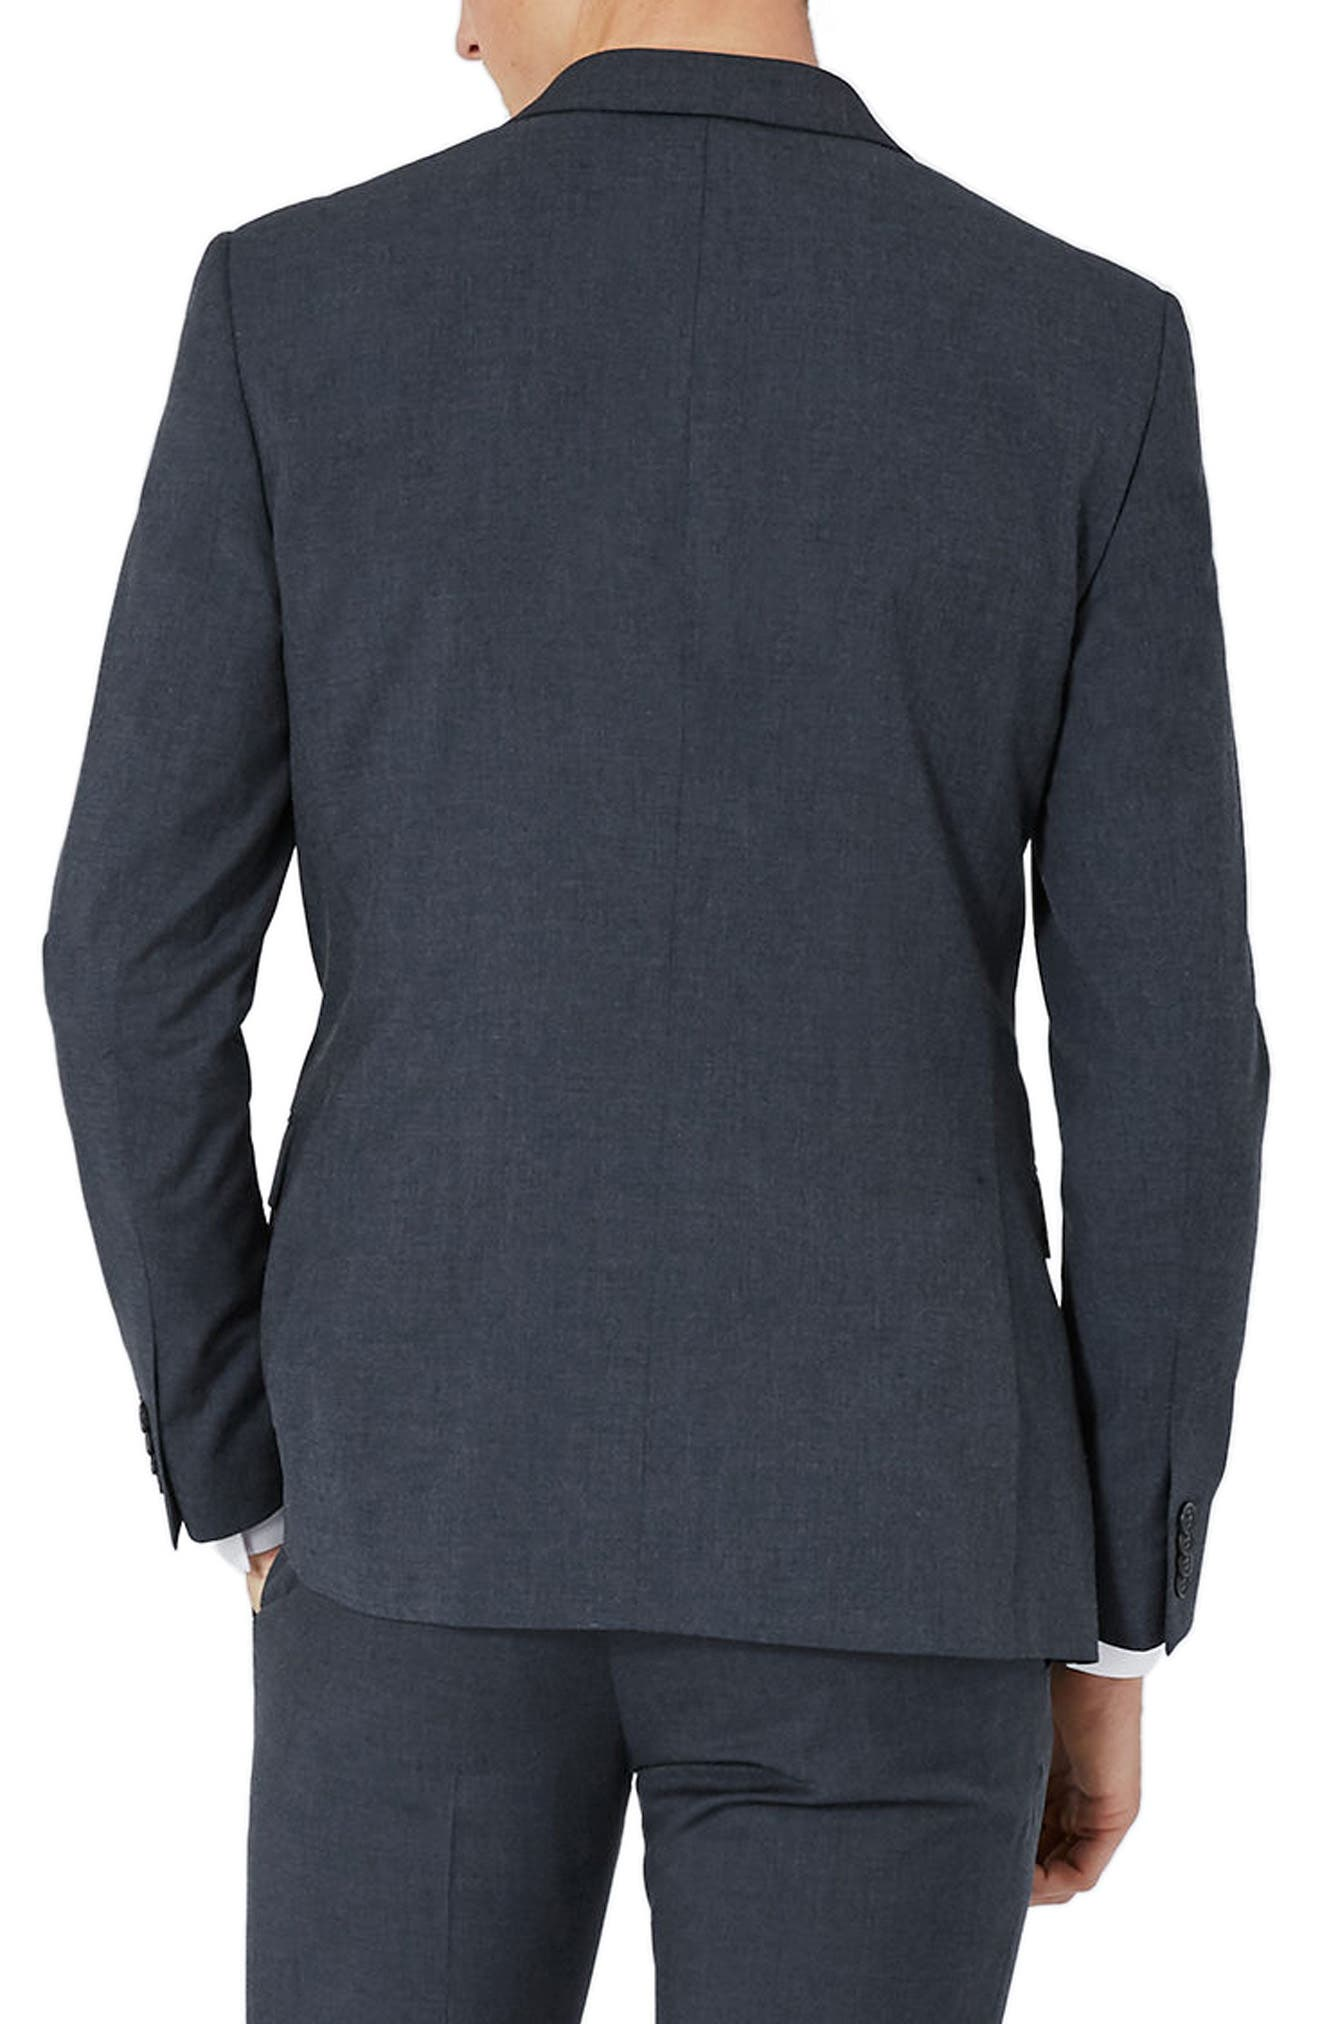 Alternate Image 3  - Topman Skinny Fit Double Breasted Suit Jacket